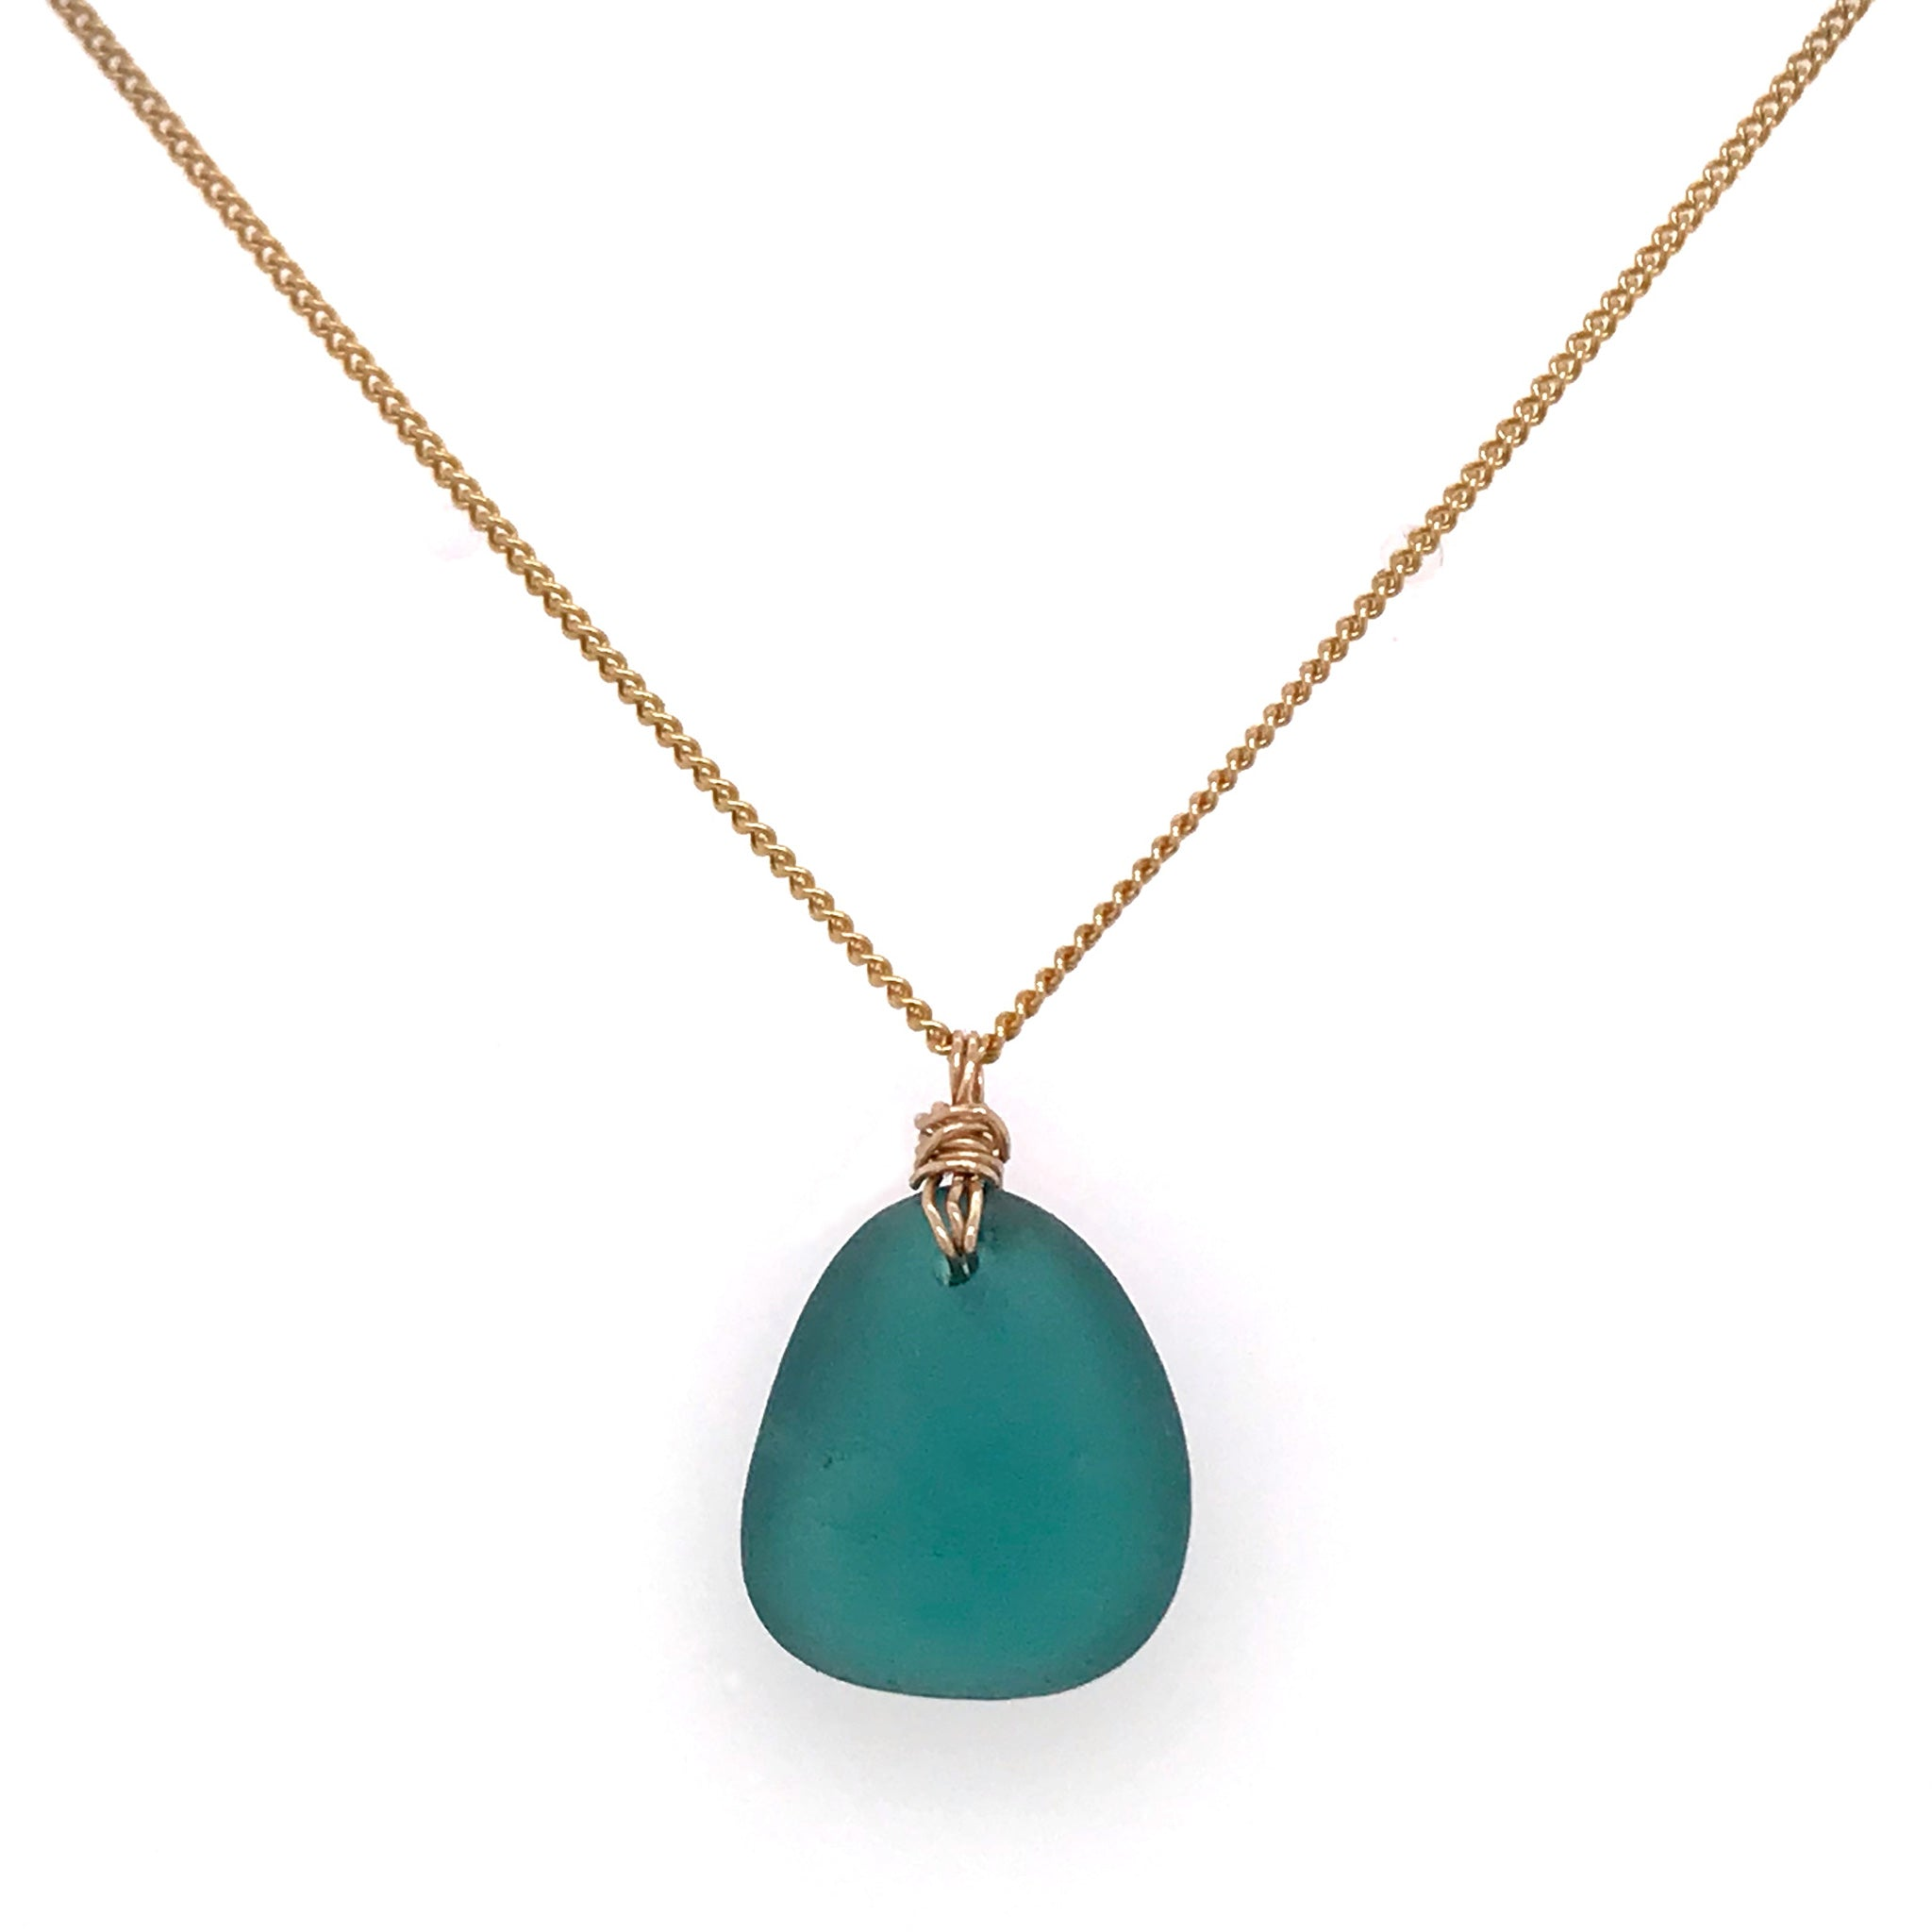 rare colour seaglass teal on gold necklace kriket broadhurst jewellery